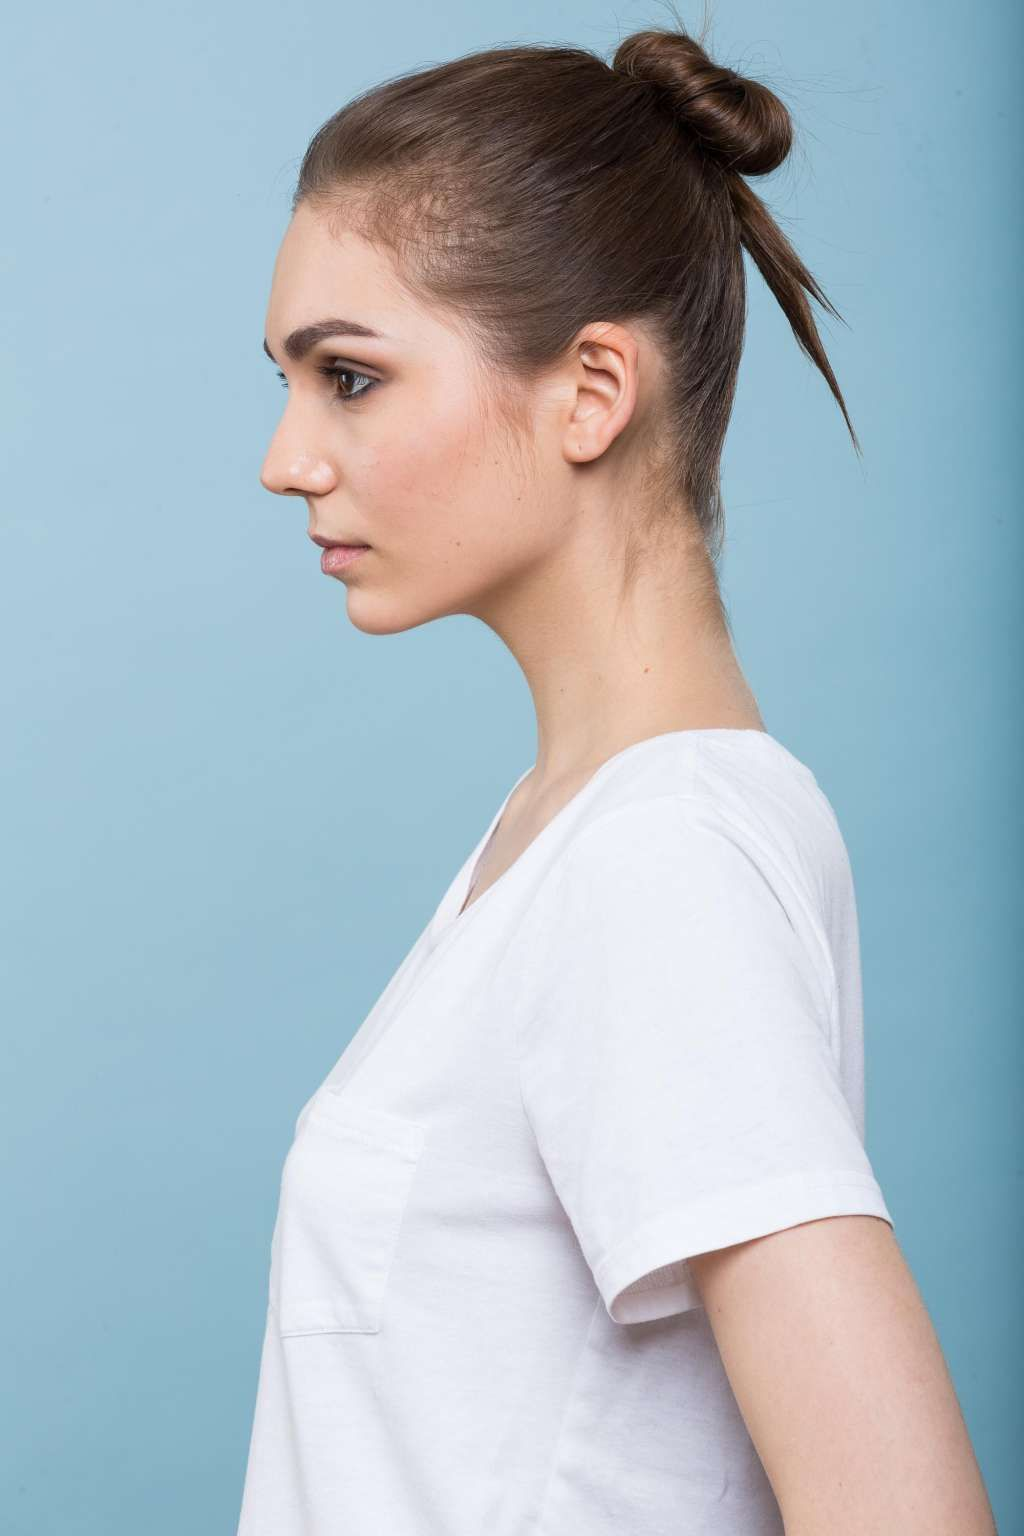 Everyday Hairstyle For Thin Hair One1lady Com Hair Hairs